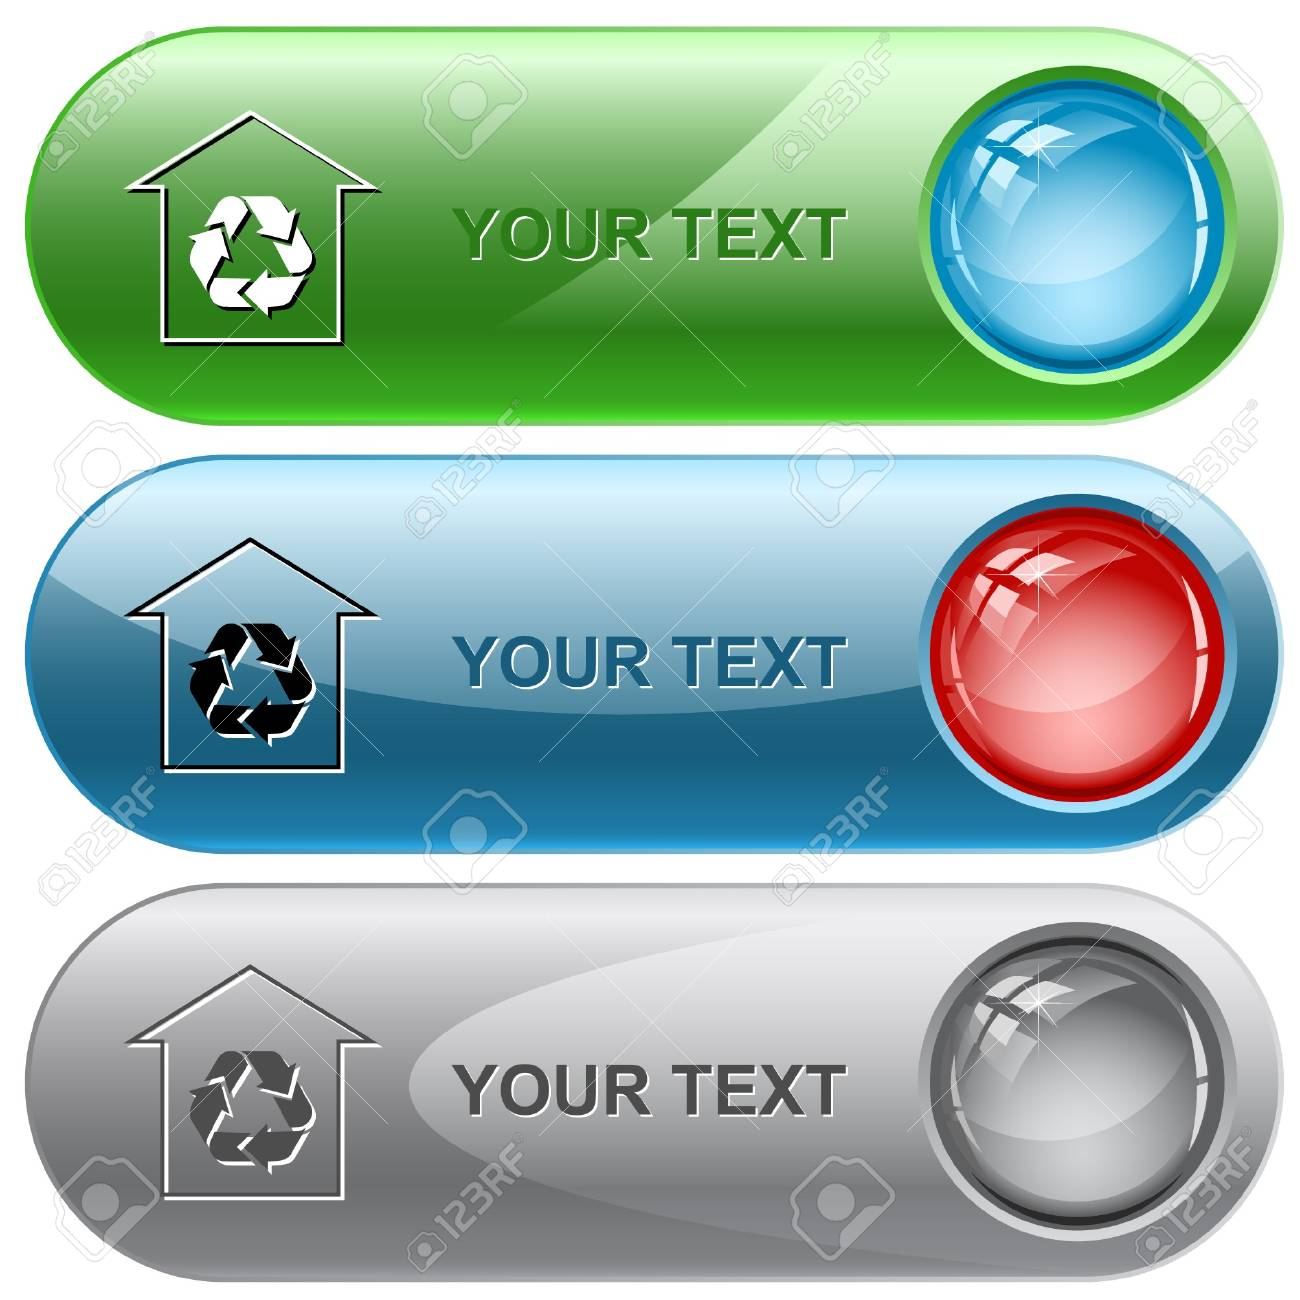 Protection of nature internet buttons. Stock Vector - 7176724